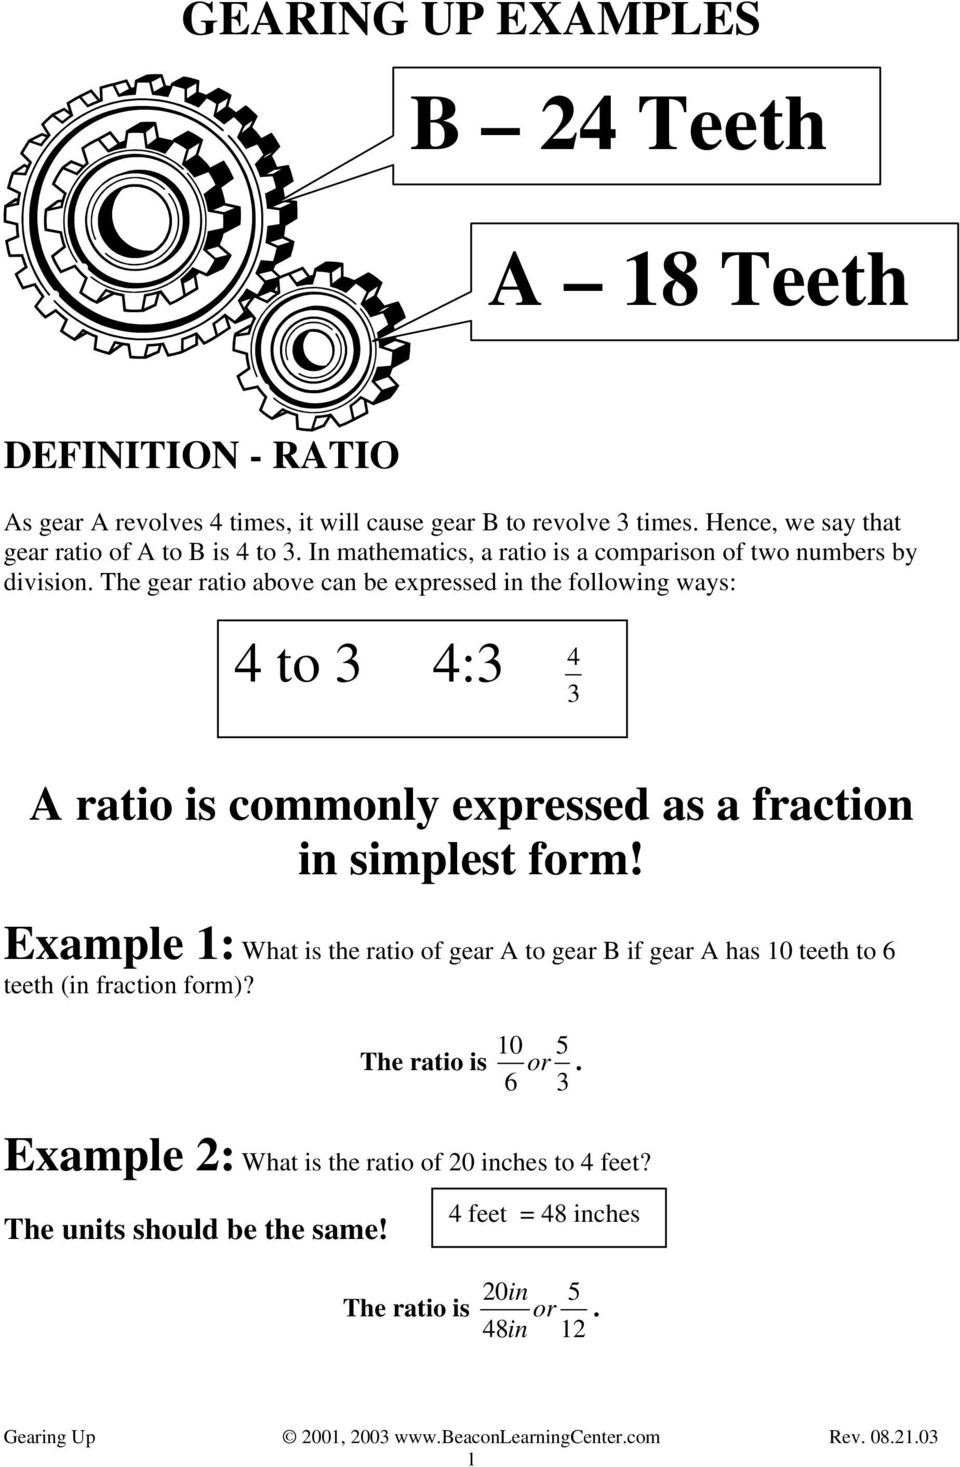 The Gear Ratio Above Can Be Epressed In The Following Ways To A Ratio